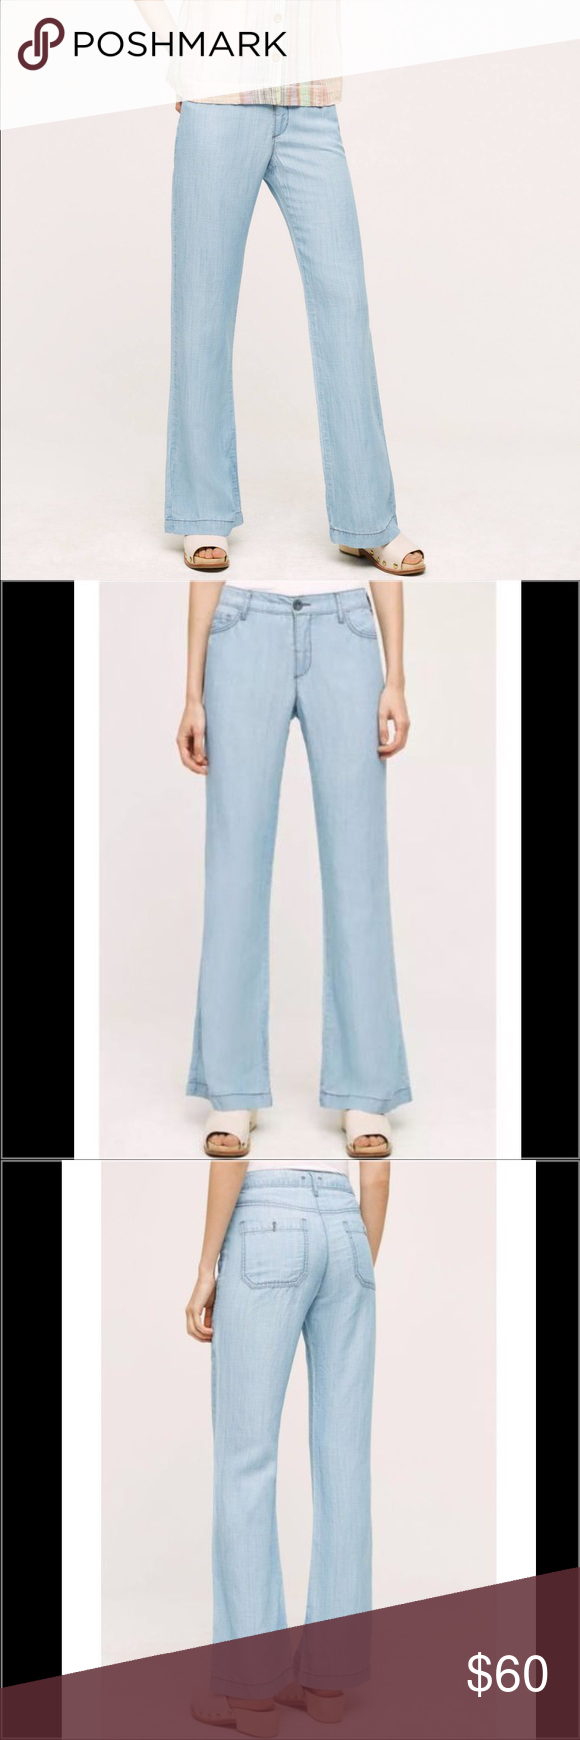 """Anthropologie Chambray Jeans Pilcro High-Rise Chambray Trousers. Lyocell, linen Wide-leg fit Five-pocket styling Machine washable! 28: 15.25"""" waist, 9.5"""" rise and 32.5"""" inseam. 30: 16.25"""" waist, 10"""" rise and 32.75"""" inseam. Anthropologie Jeans Flare & Wide Leg"""